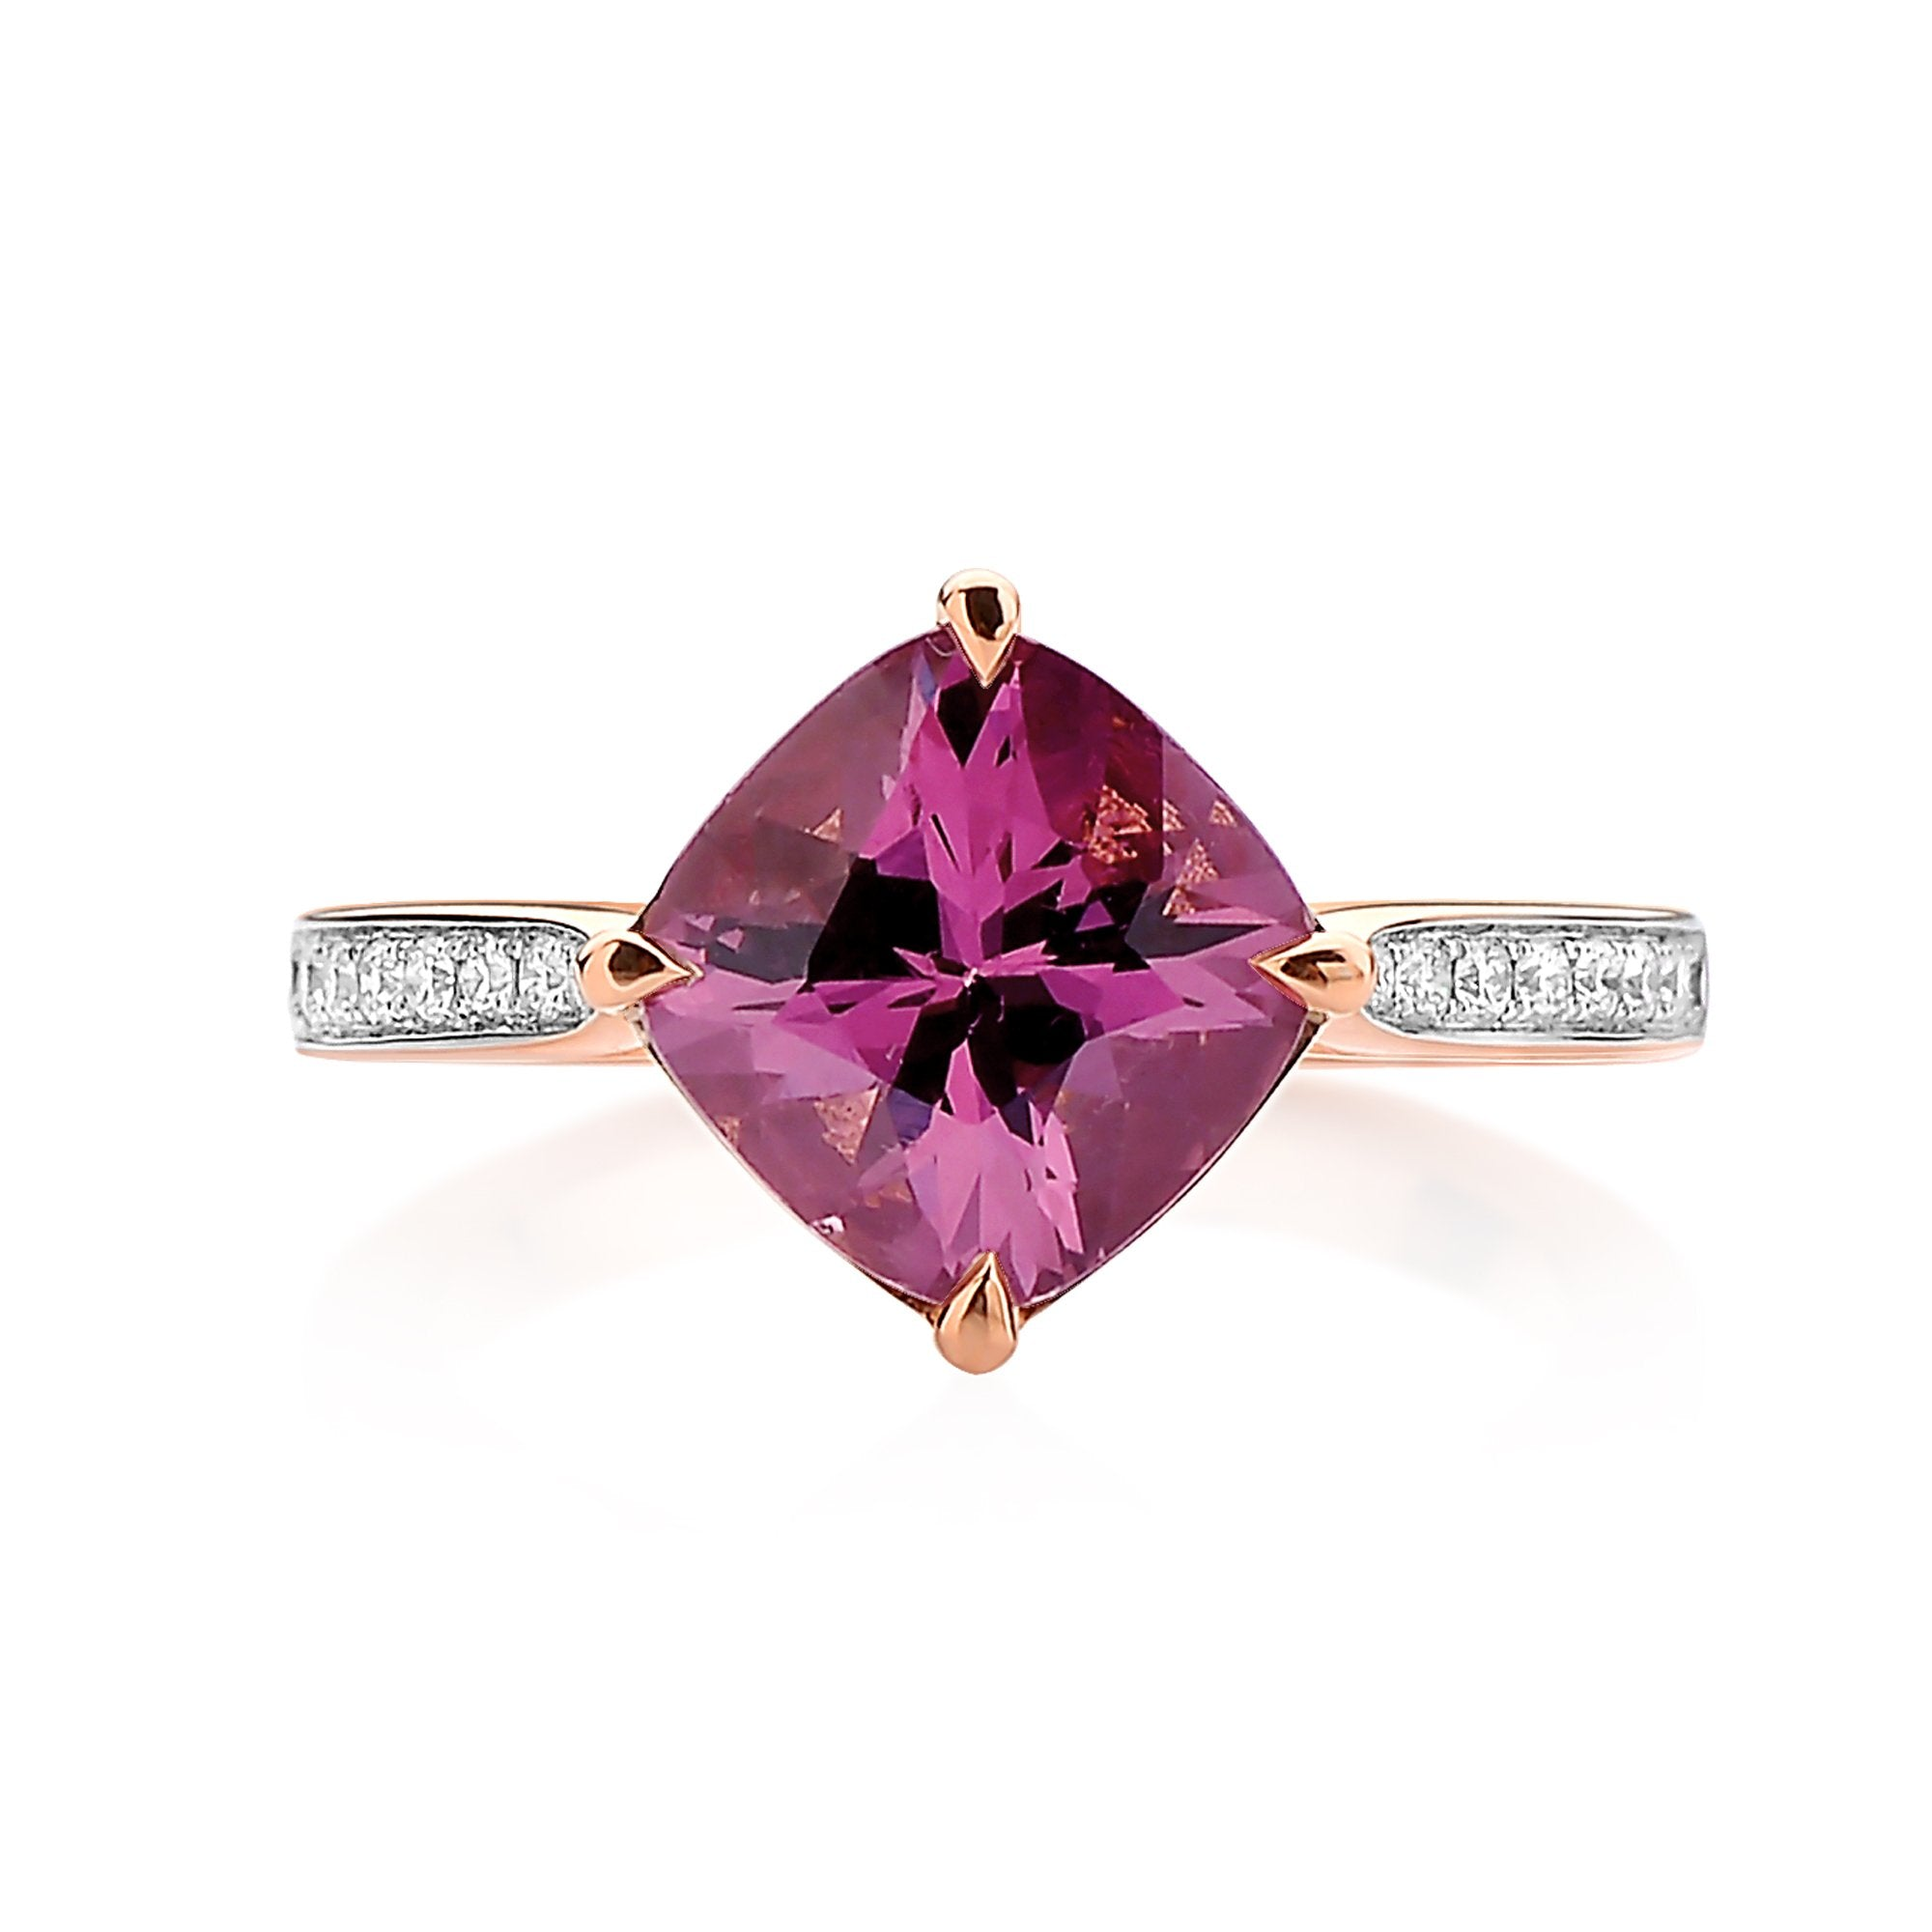 com yellow side for kind rhodolite wishlist diamonds ring shop gold amethyst rings annoushka by women uk dusty diamond garnet fine engagement jewellery